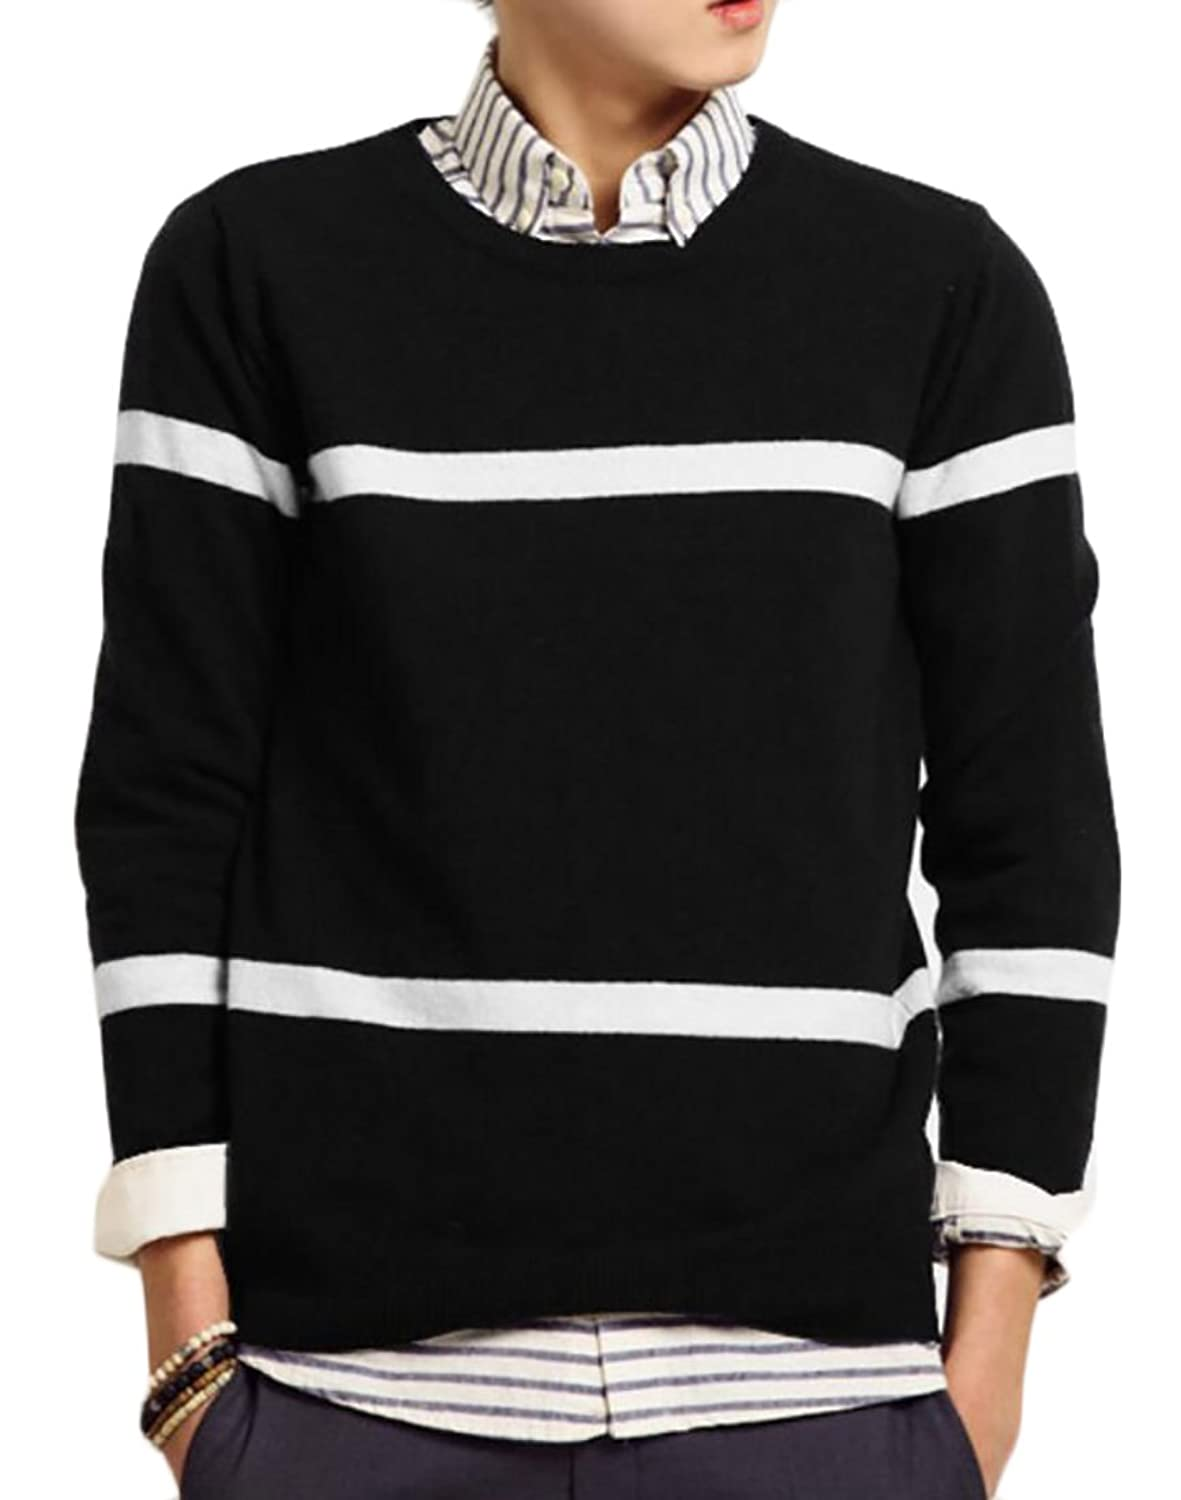 d8efc425c2e5 CRYYU-Men Plus Size Long Sleeve Striped Knit Jumper Pullover Sweater ...